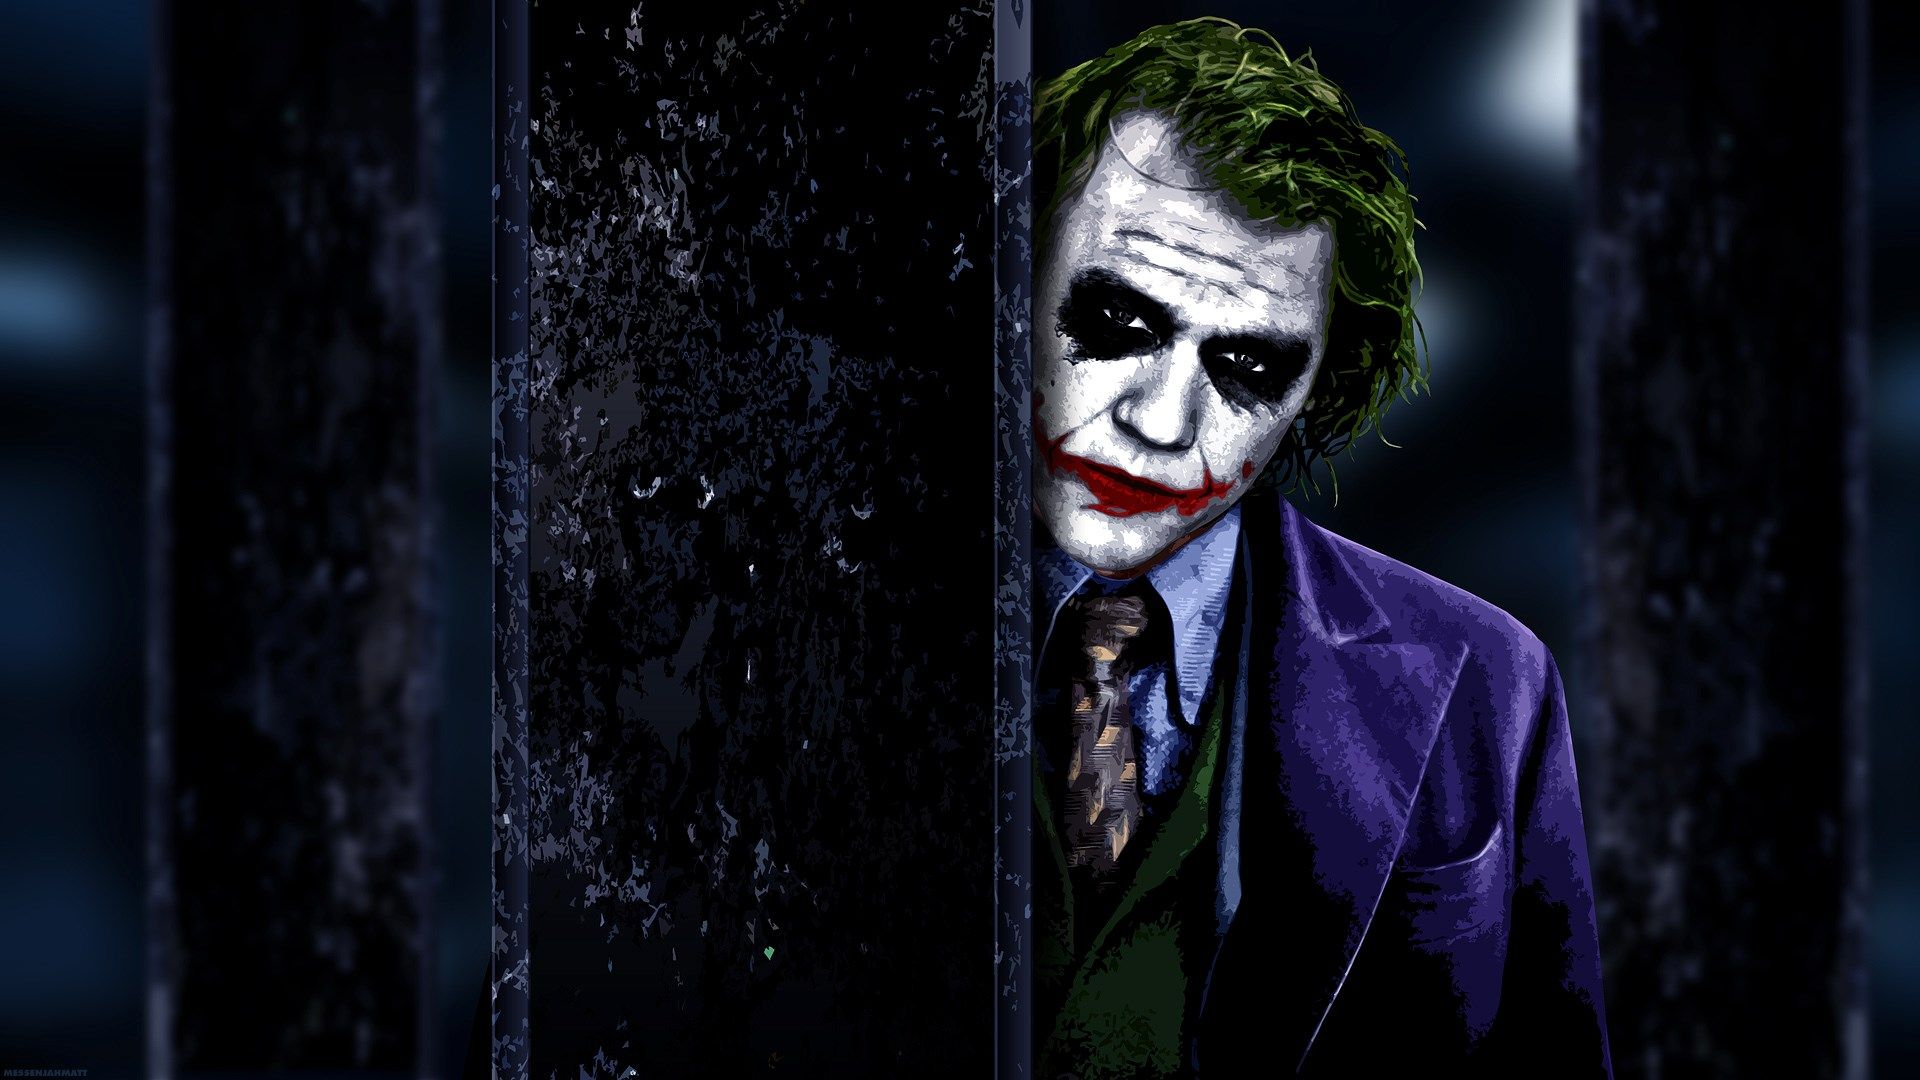 joker wallpapers for mac free | ololoshenka | pinterest | joker